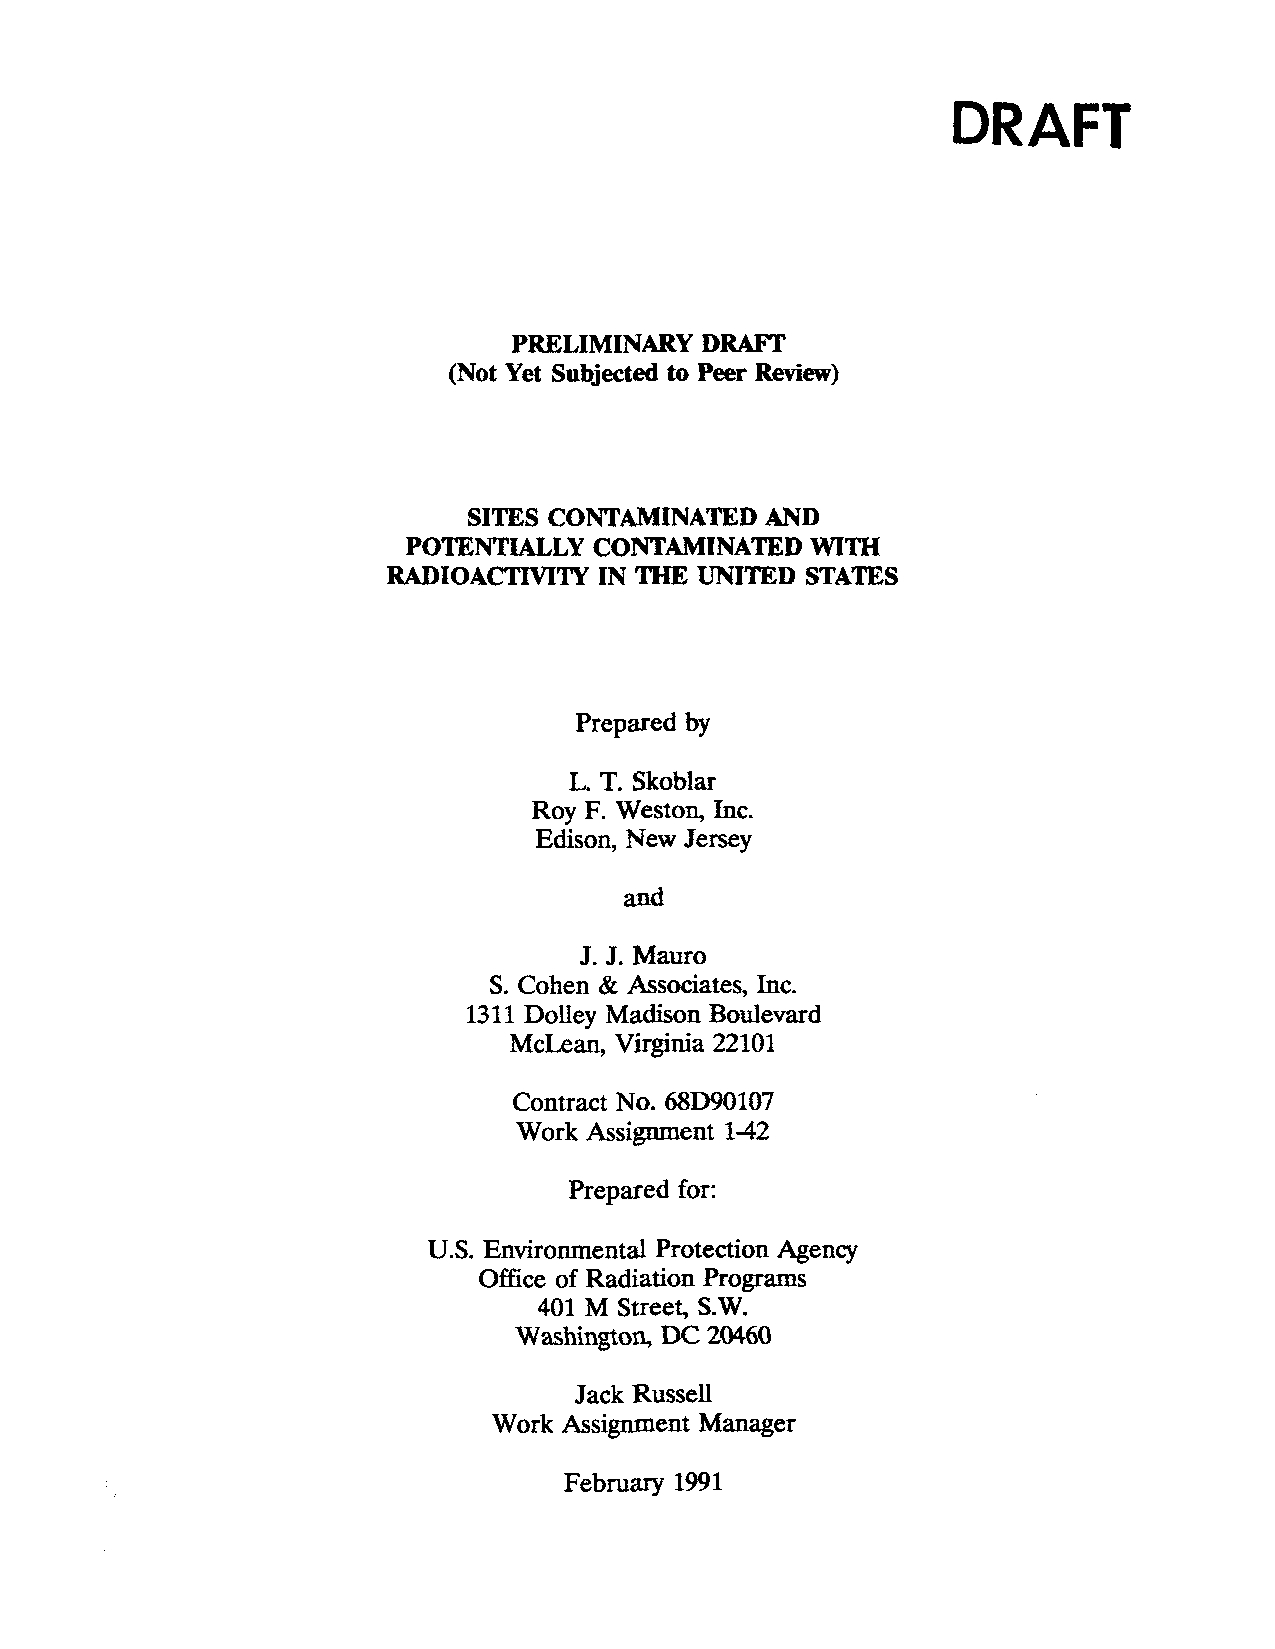 Sites Contaminated and Potentially Contaminated With Radioactivity in the United States